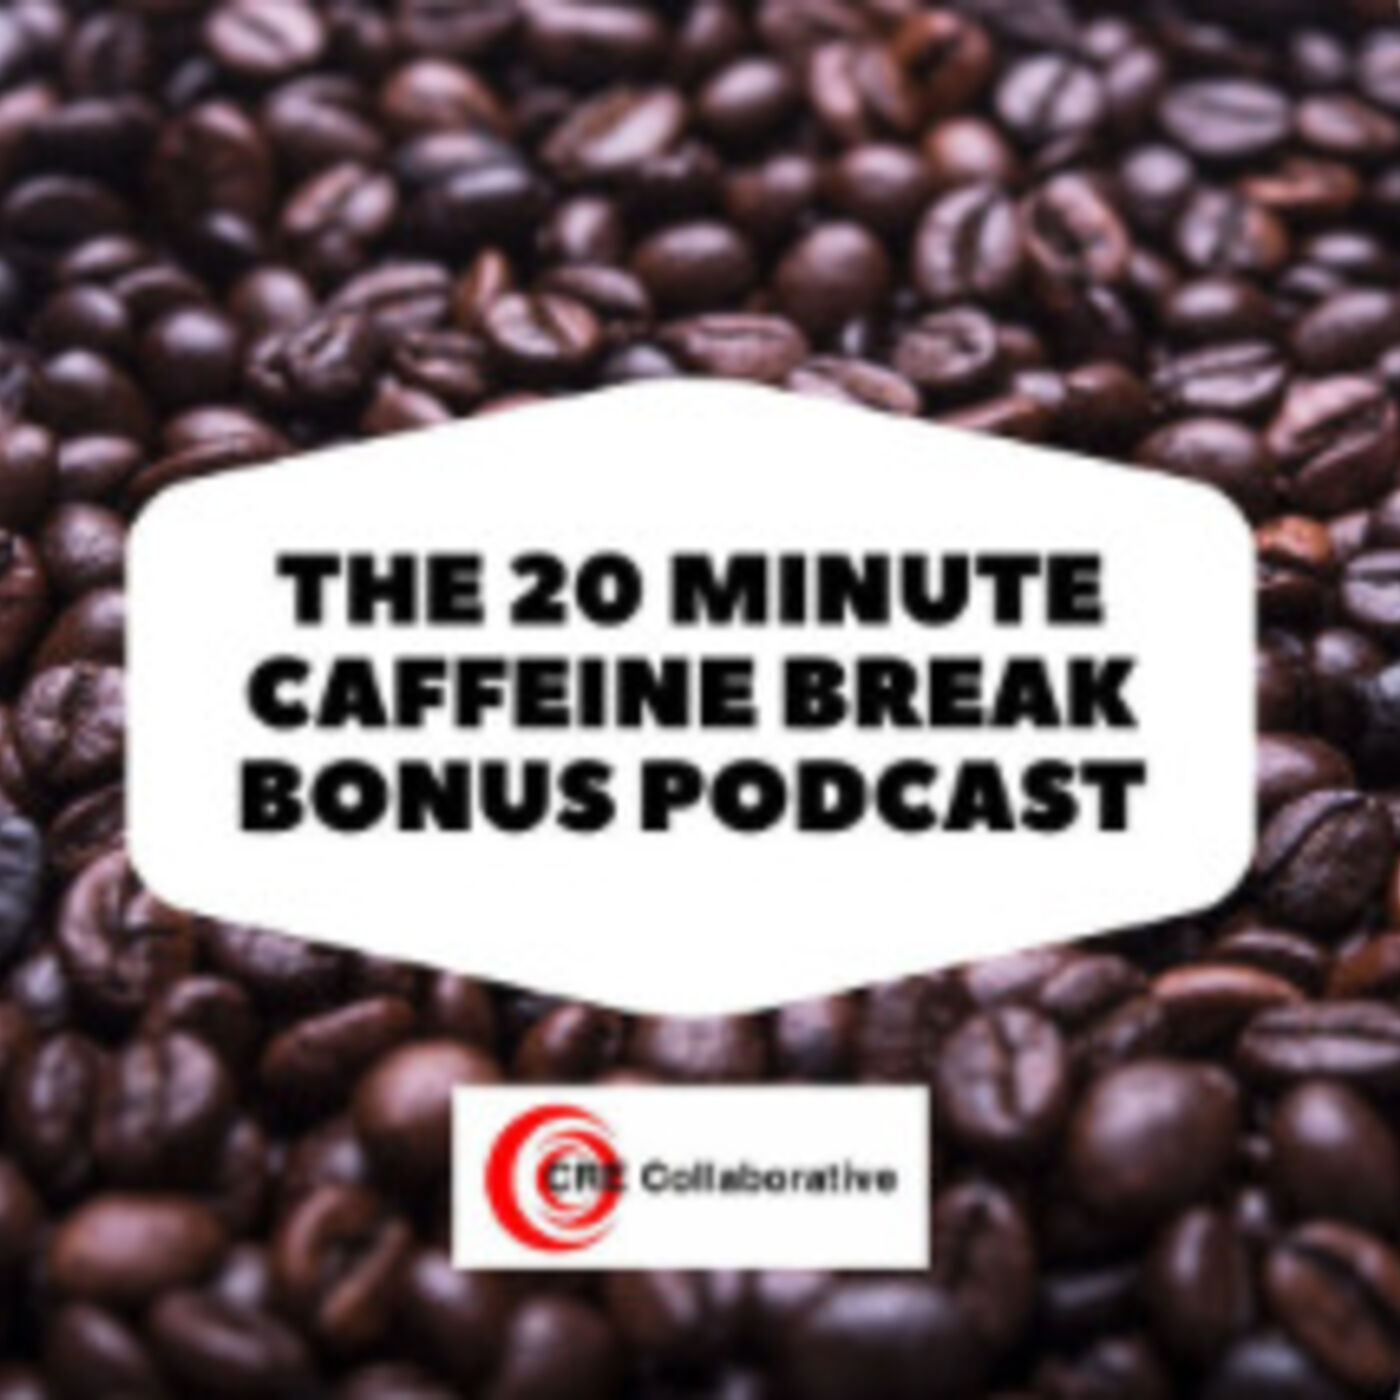 CAFFEINE BREAK - Virtual Conference for Real Estate? Operating in new markets, and more!